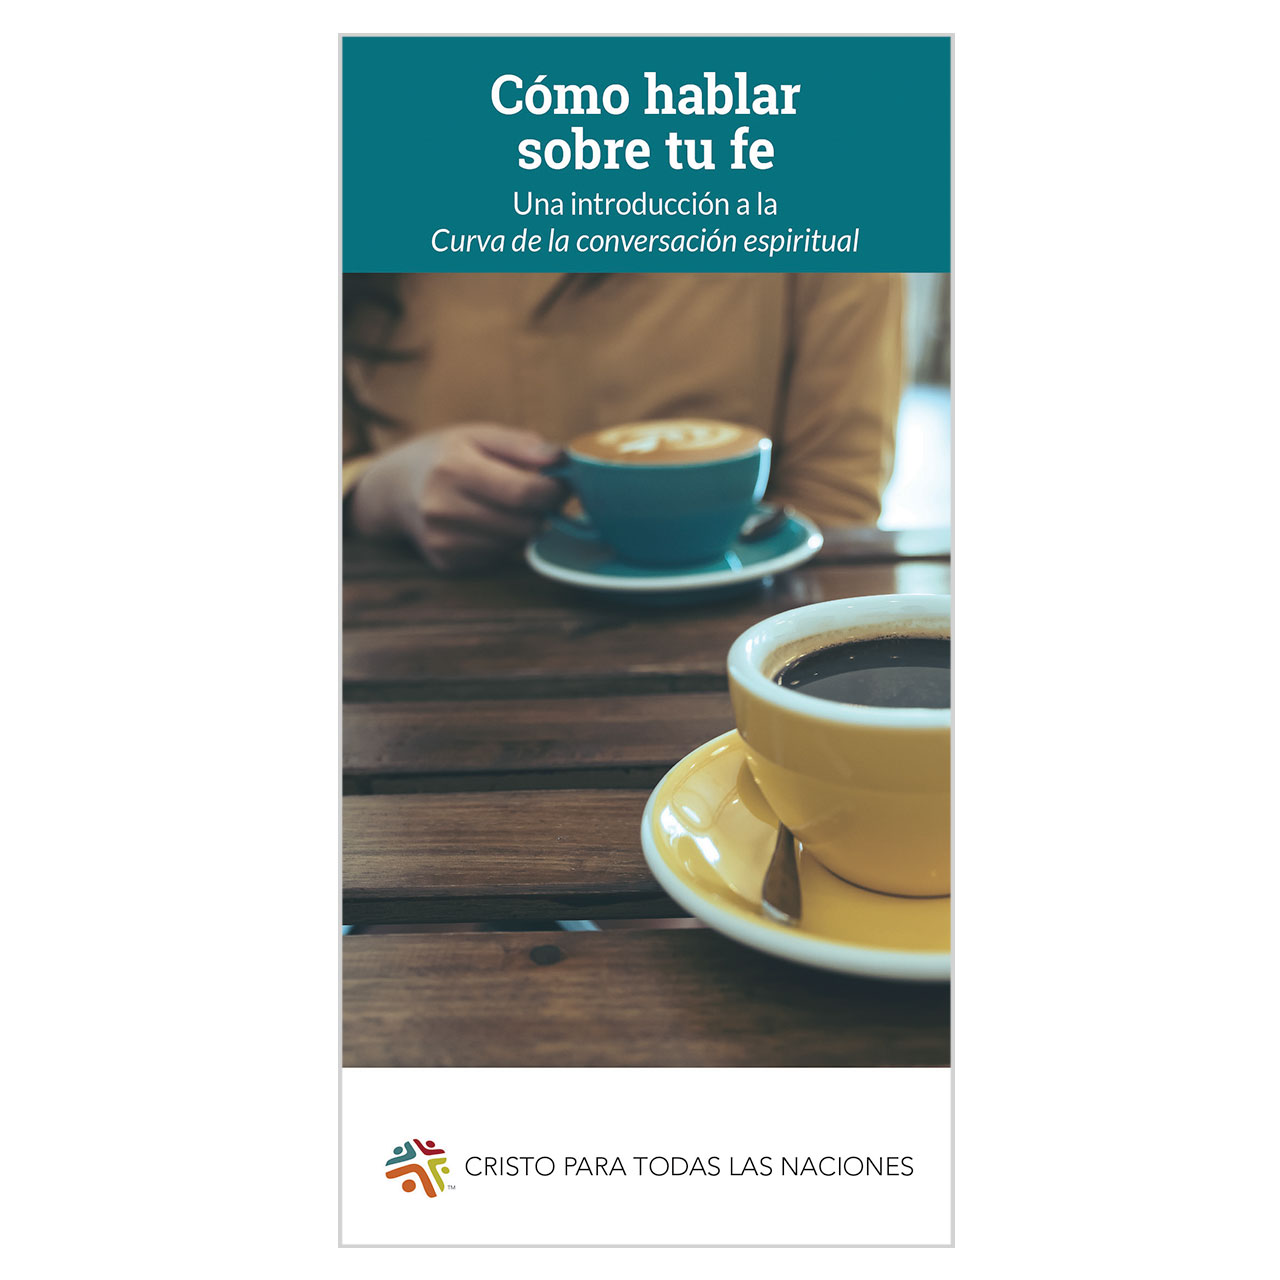 Cómo hablar sobre tu fe (How to Talk About Your Faith)